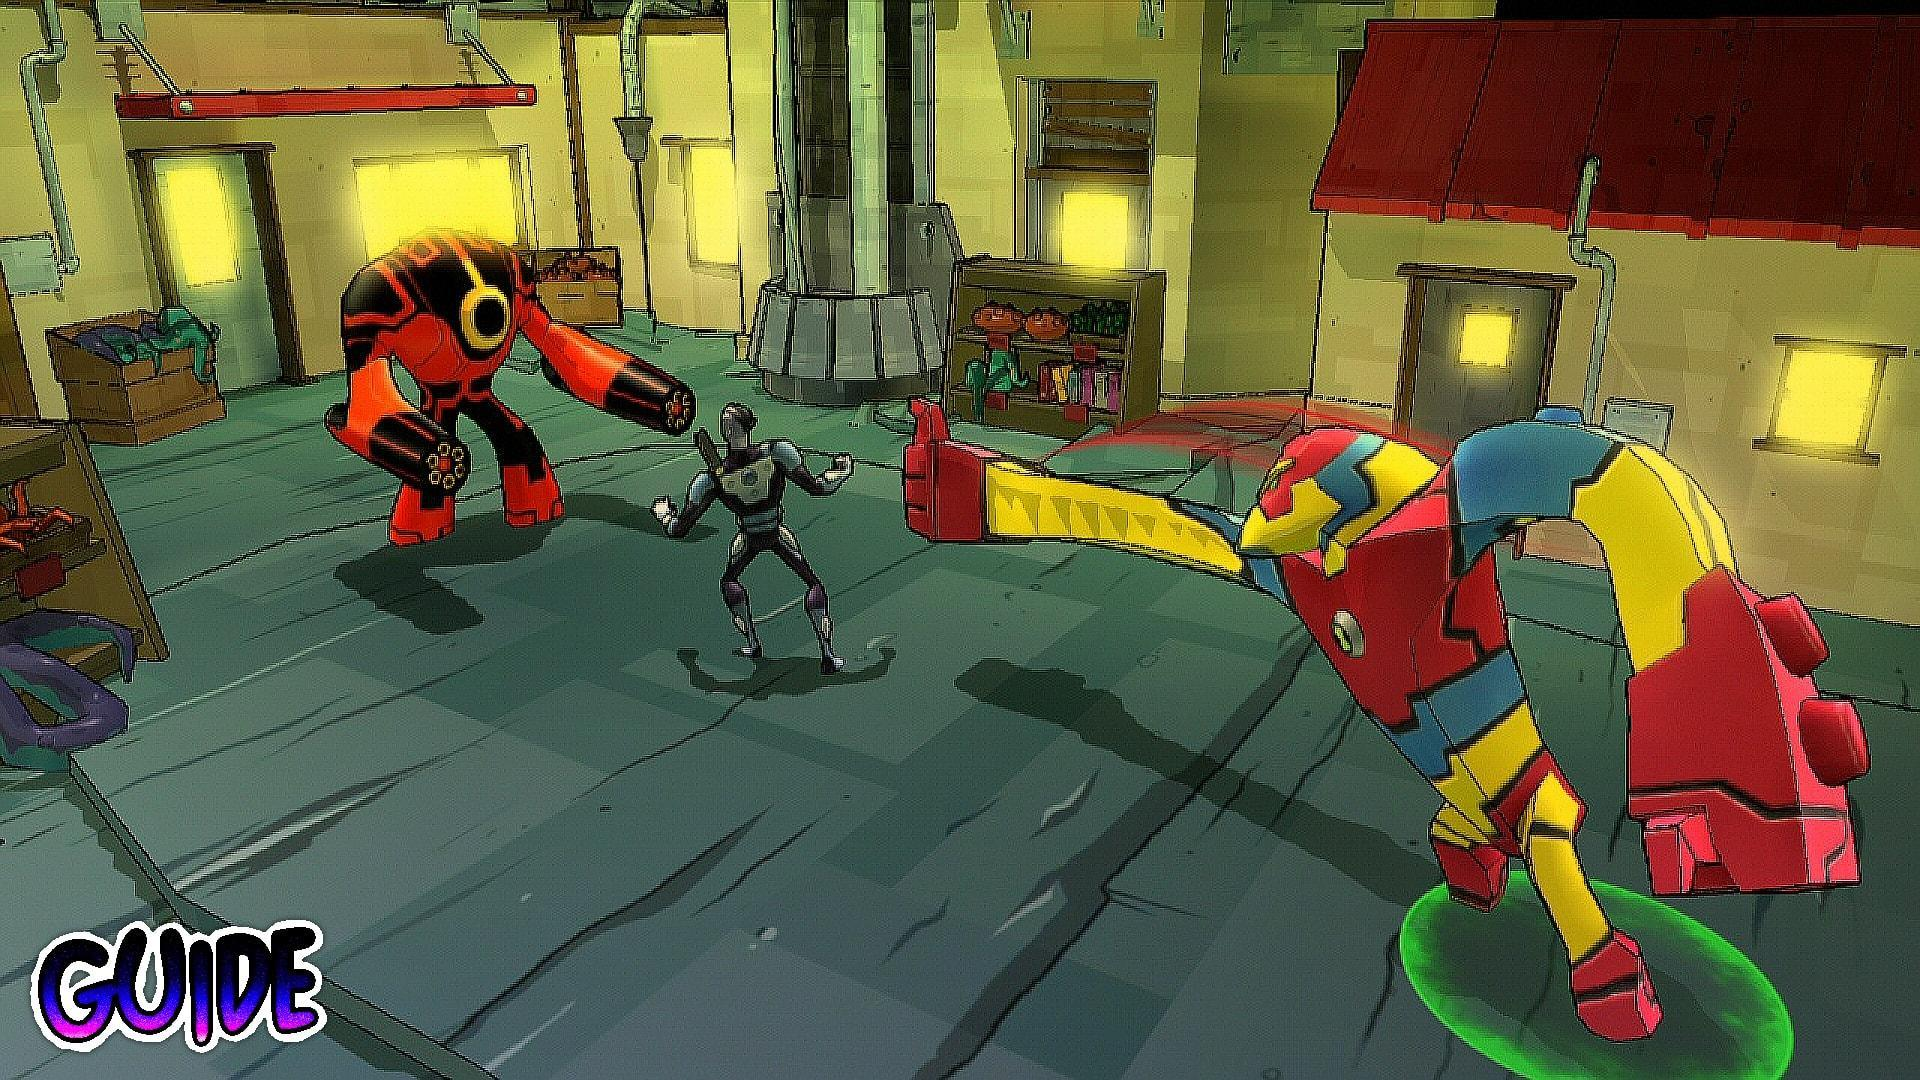 guide Ben 10 Omniverse the video game for Android - APK Download